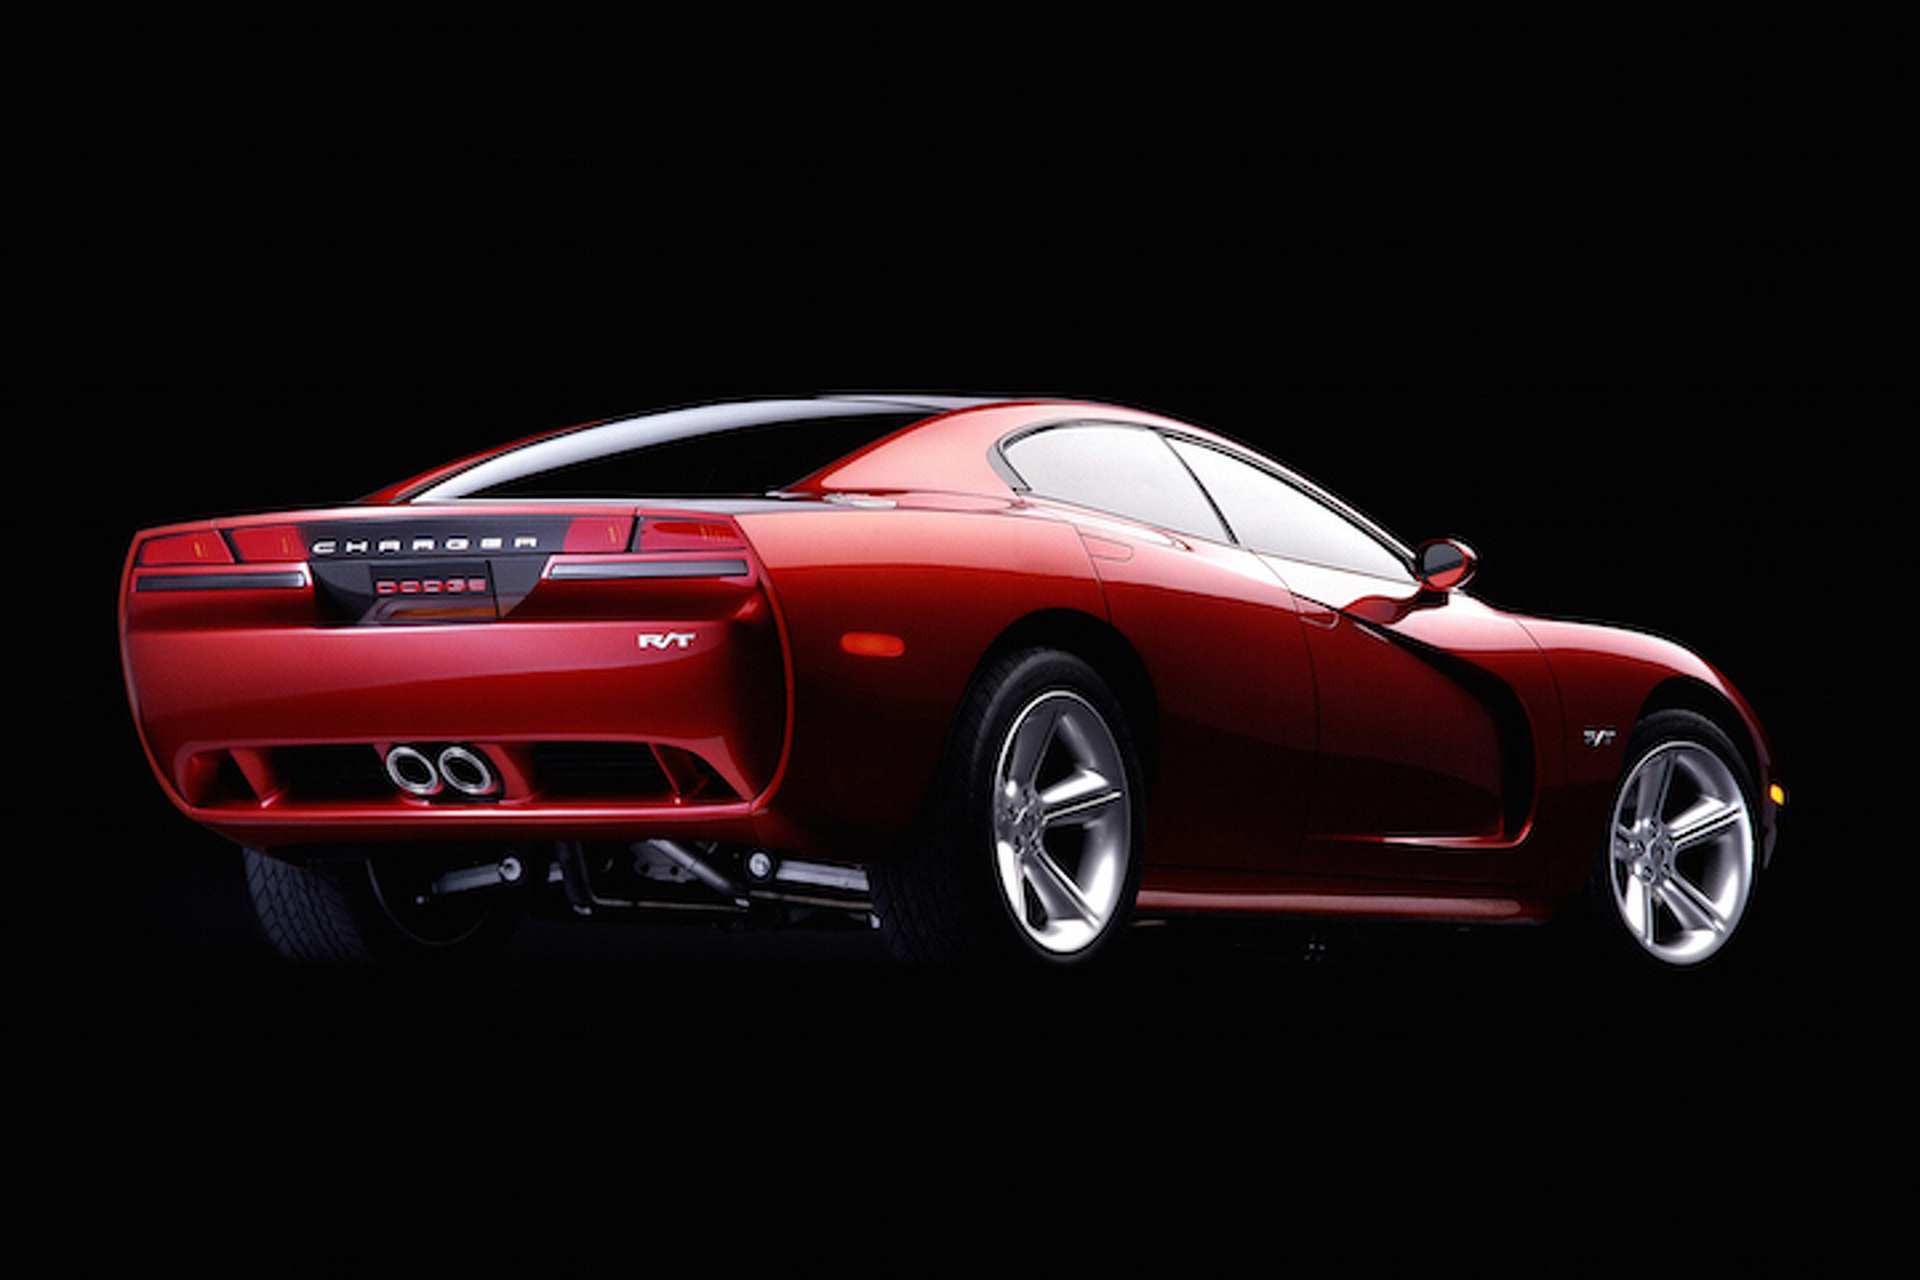 98 Best What Does The 2020 Dodge Charger Look Like Model